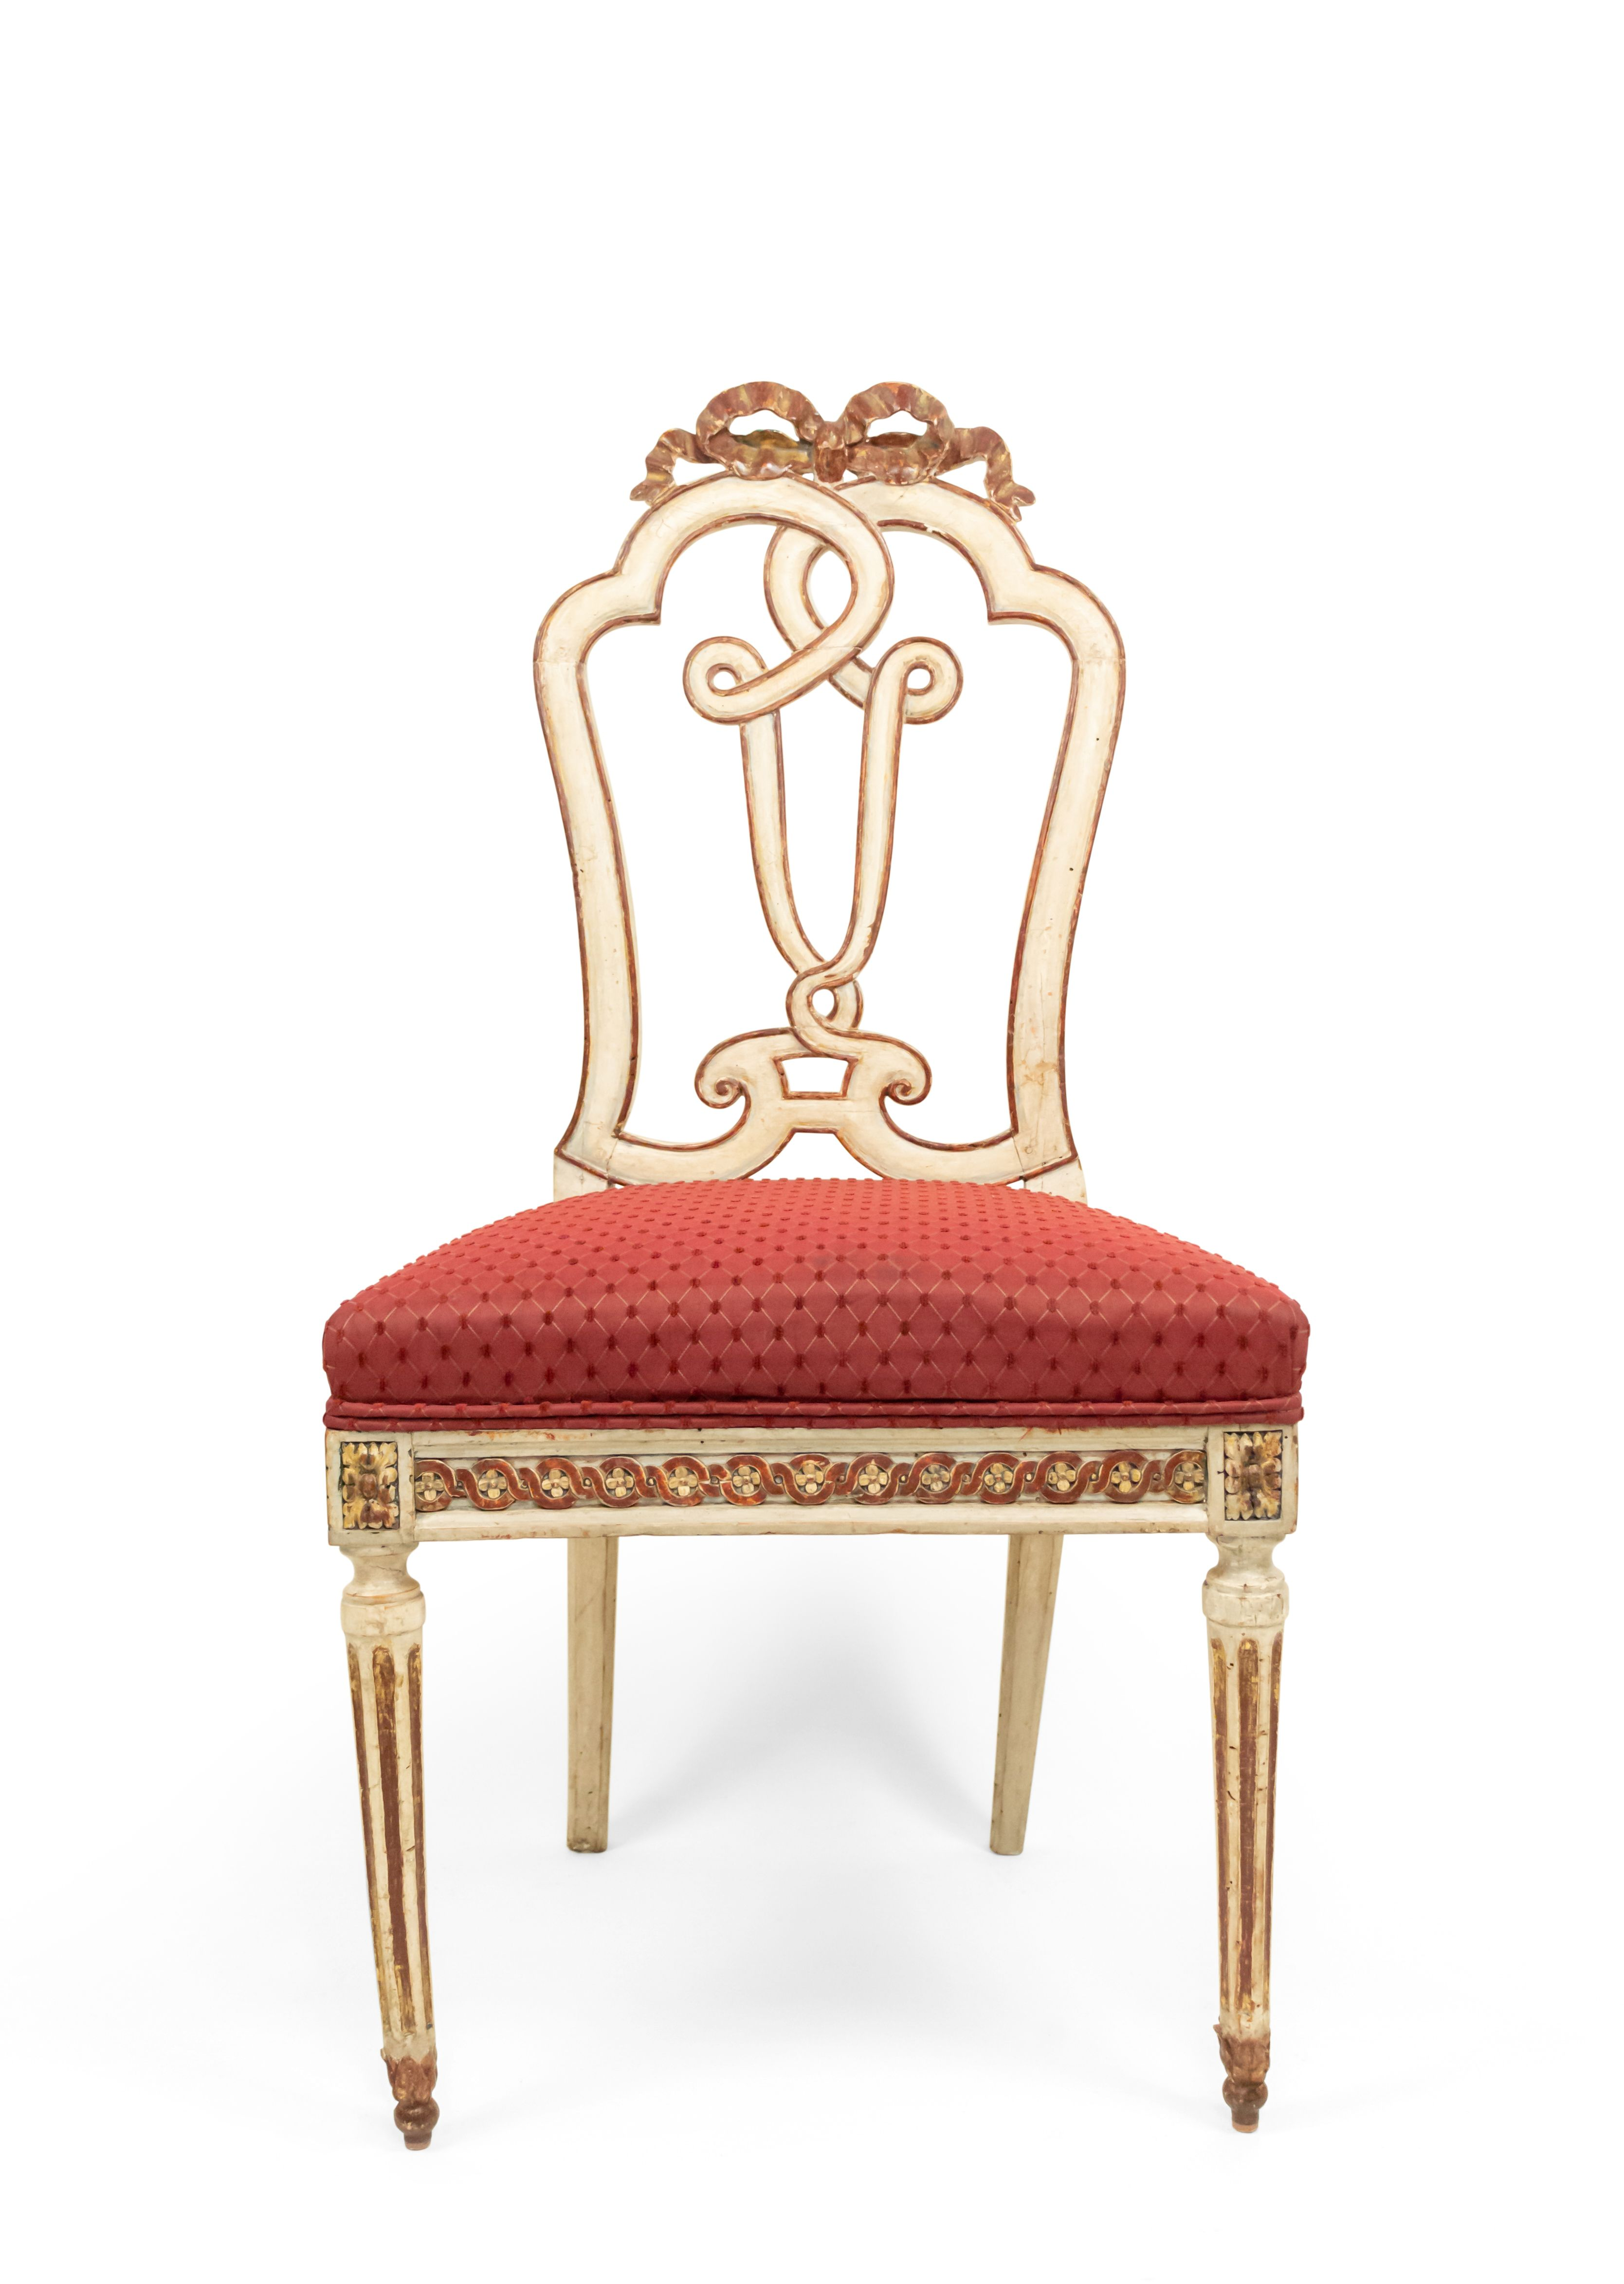 Products | NEWEL PROPS on victorian couch, victorian wheelchair, victorian tables, victorian mother's day, victorian credenza, victorian chest, victorian sideboard, victorian chaise lounge, victorian recliner, victorian club chair, victorian folding chair, victorian candles, victorian rocking chair, victorian nursing chair, victorian office chair, victorian urns, victorian era chaise, victorian chaise furniture, victorian country, victorian loveseat,